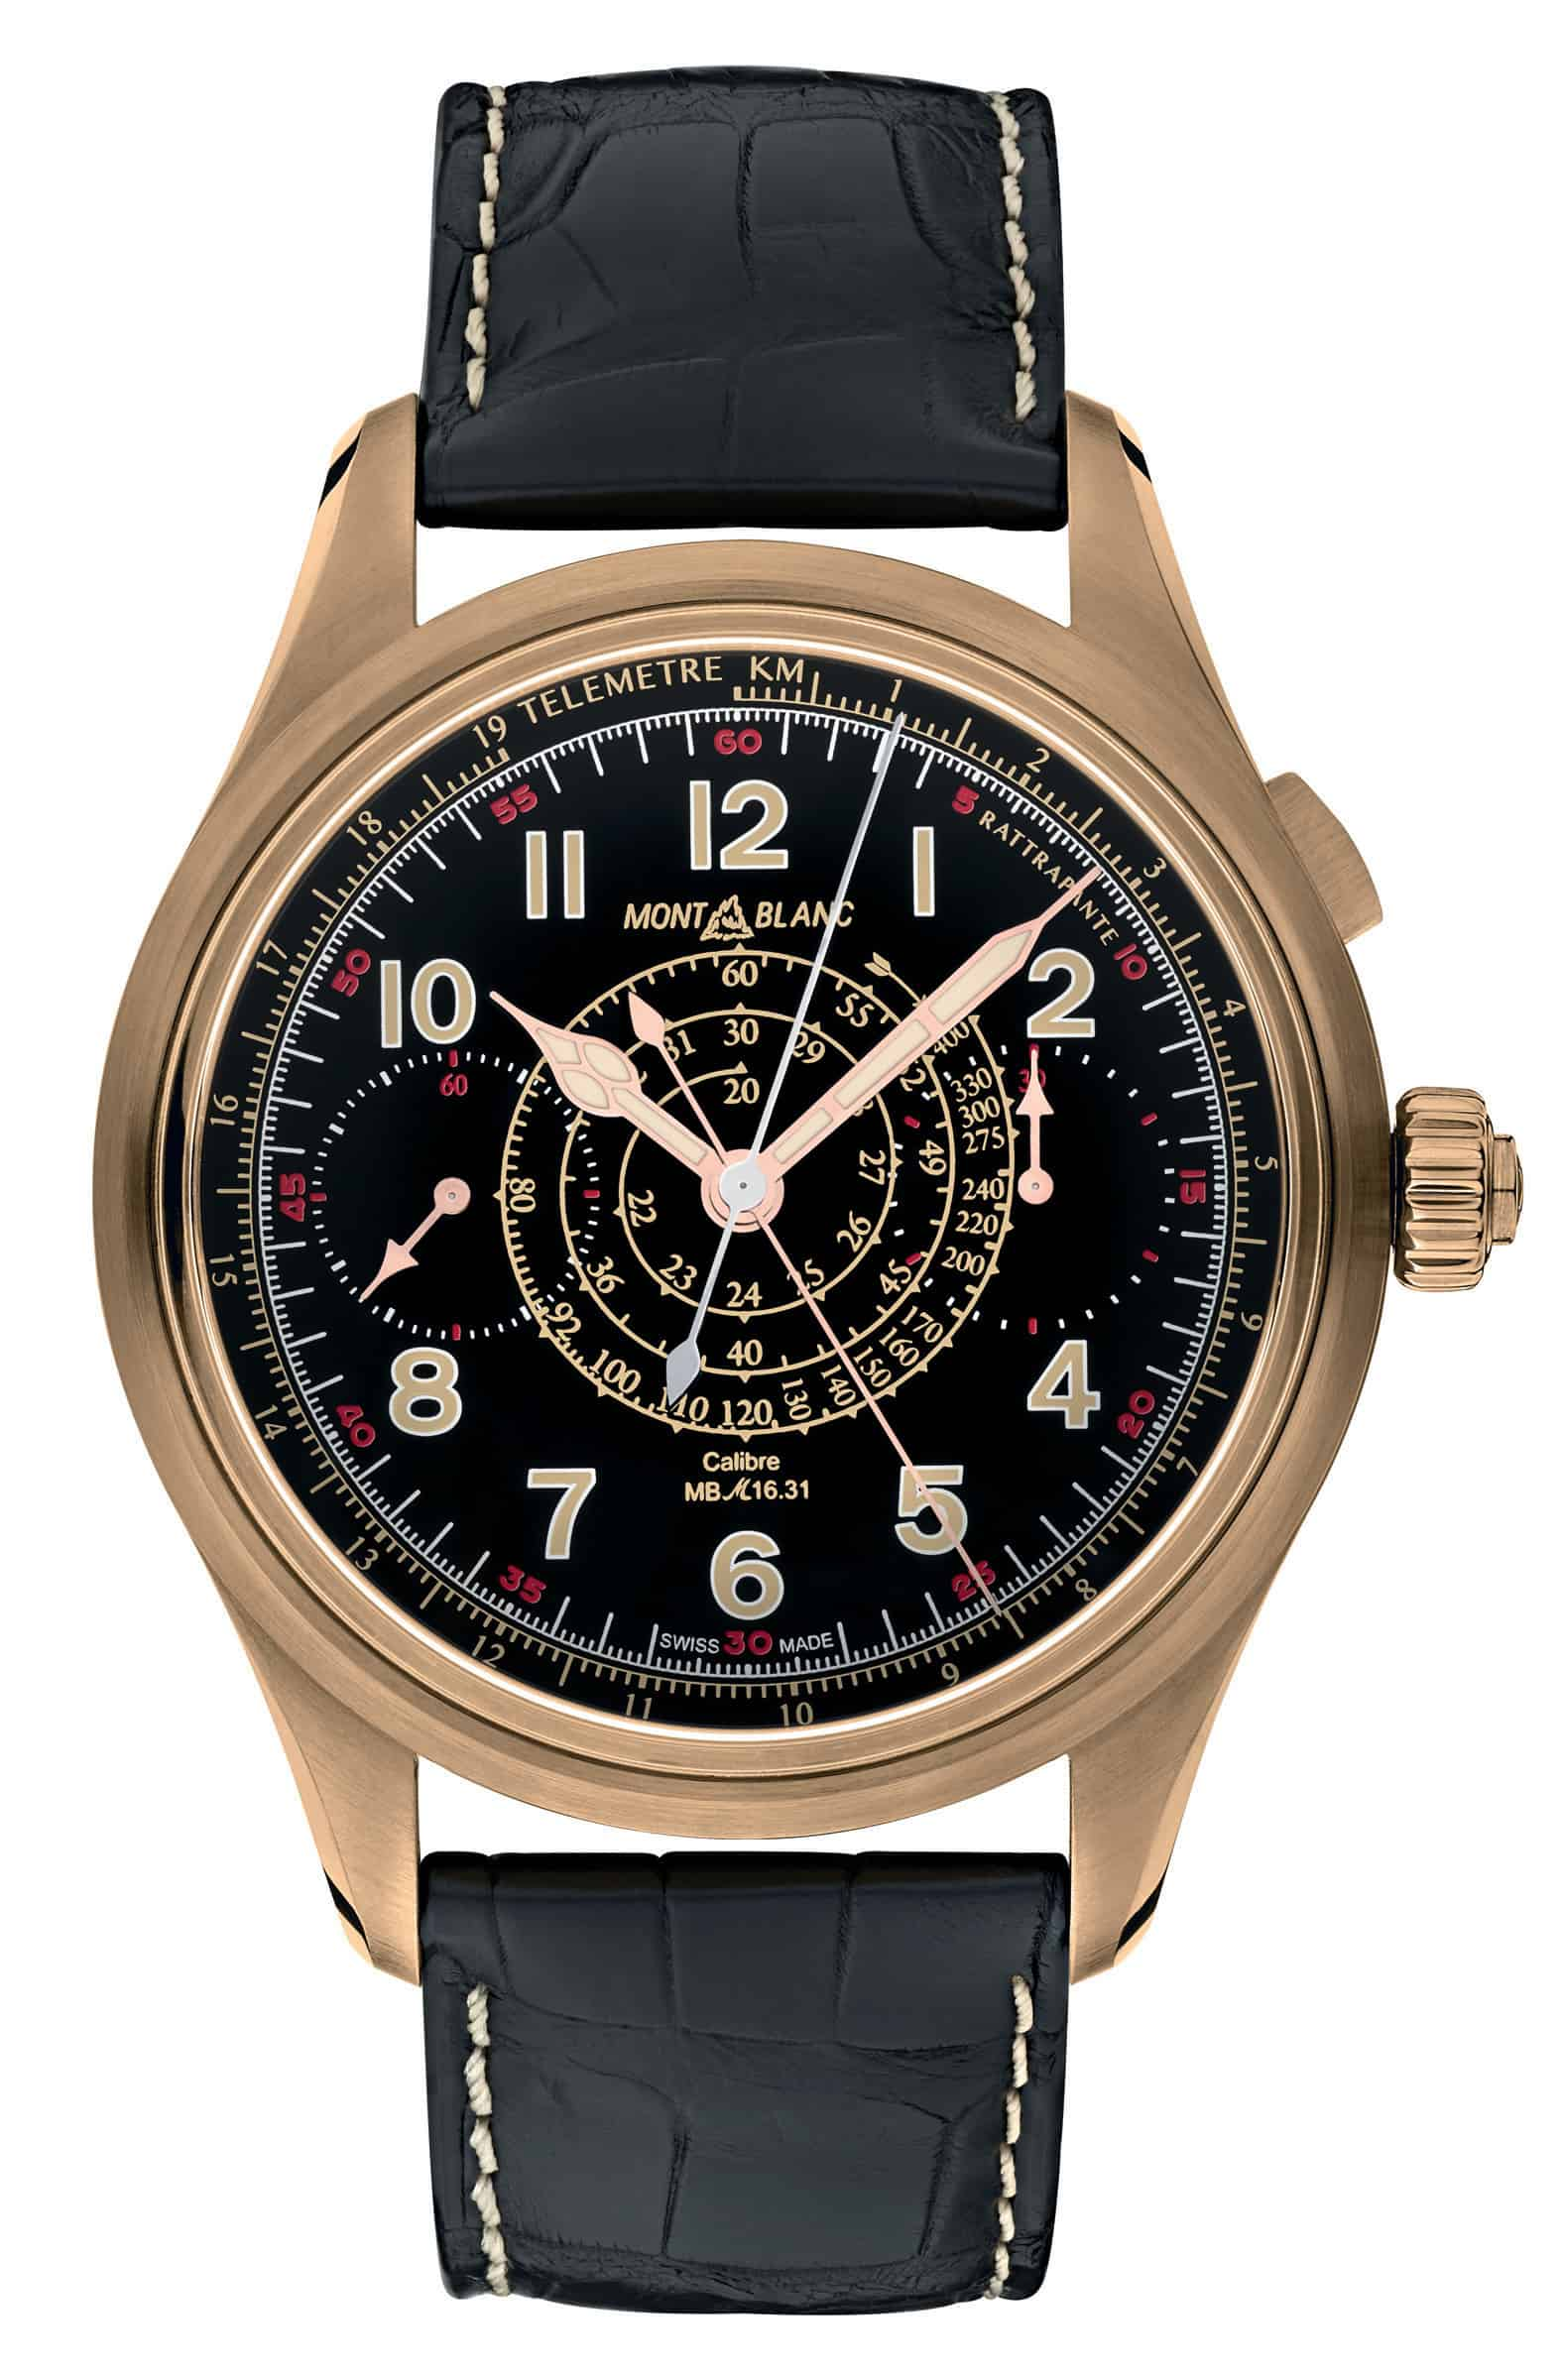 Montblanc 1858 Chronograph Rattrapante